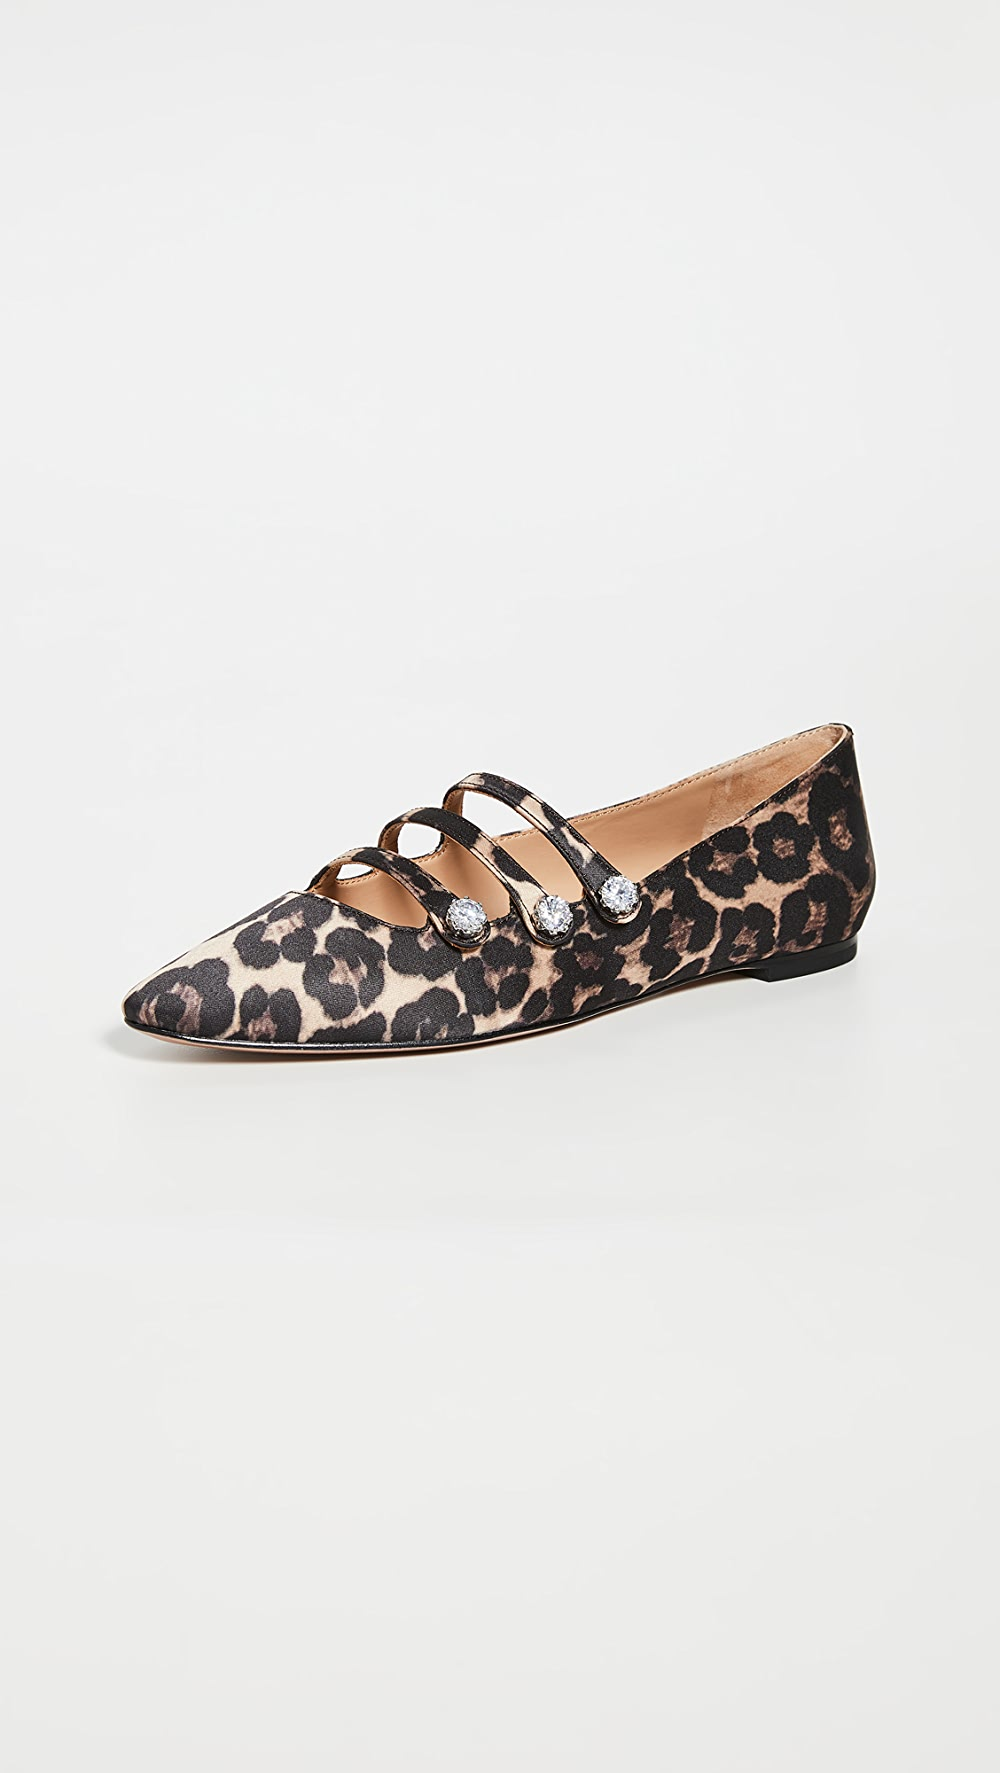 Efficient Veronica Beard - Nola Flats Jade White